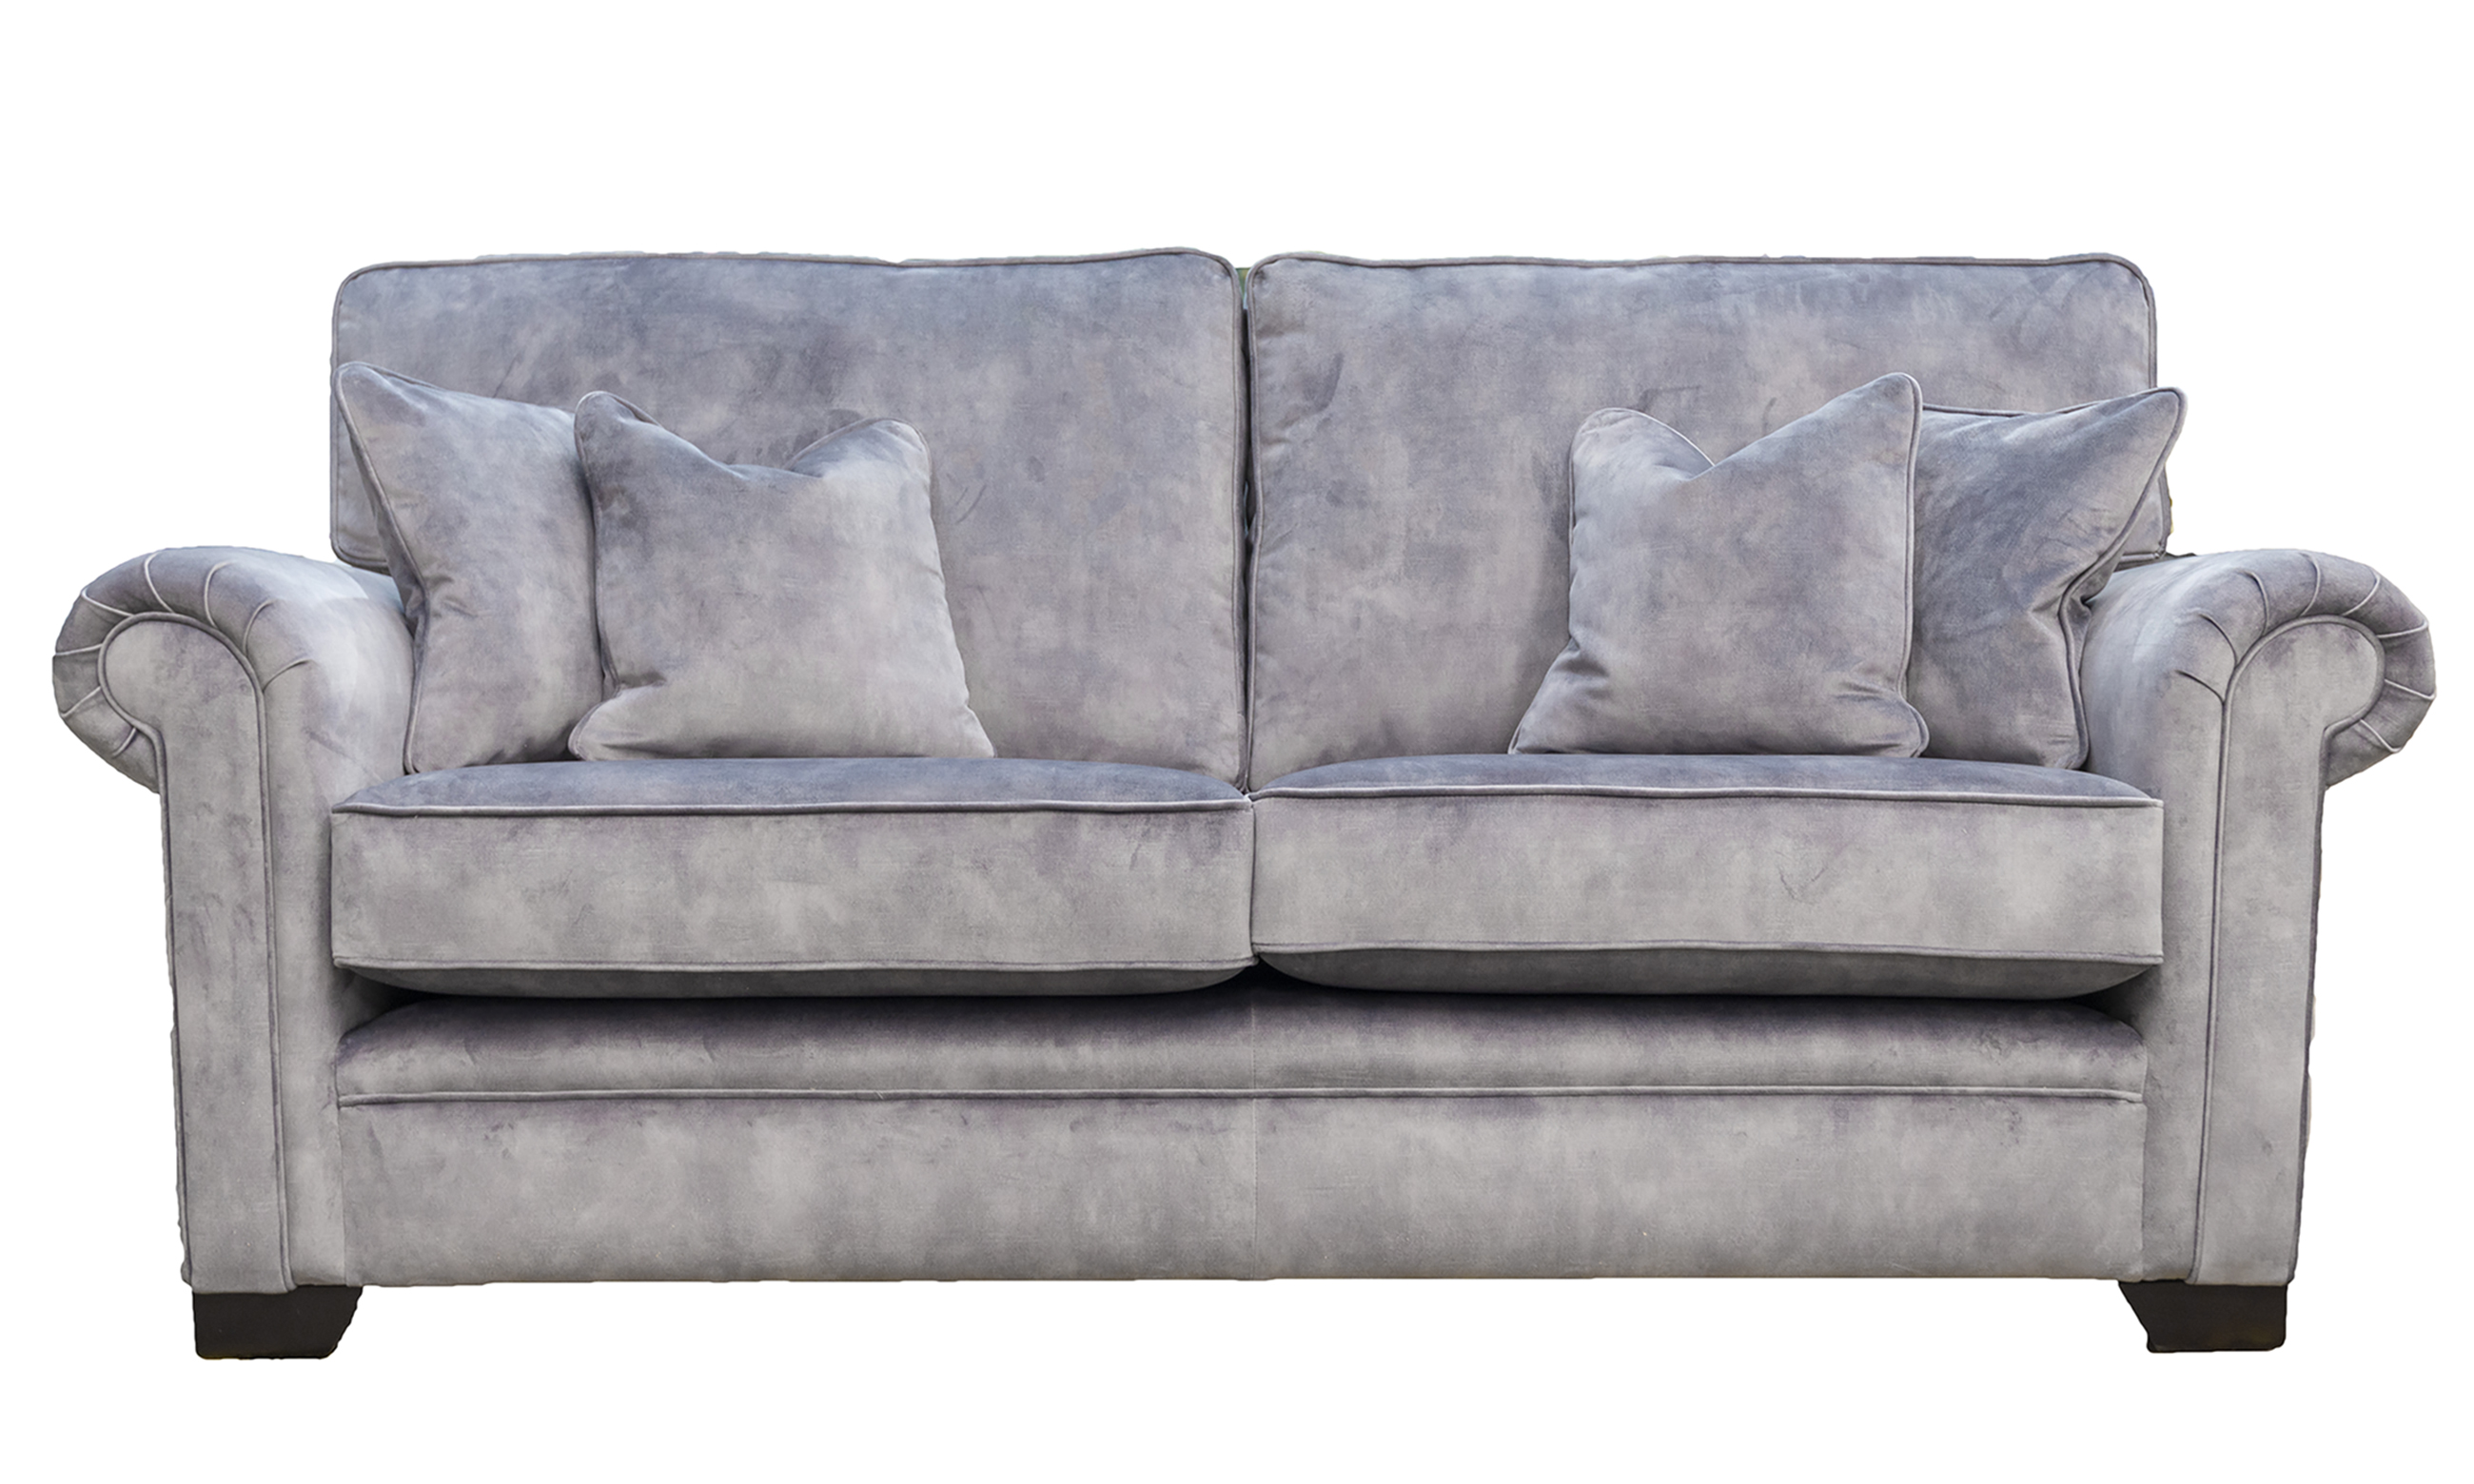 Imperial 3 Seater Sofa in Lovely Armour, Gold Collection Fabric